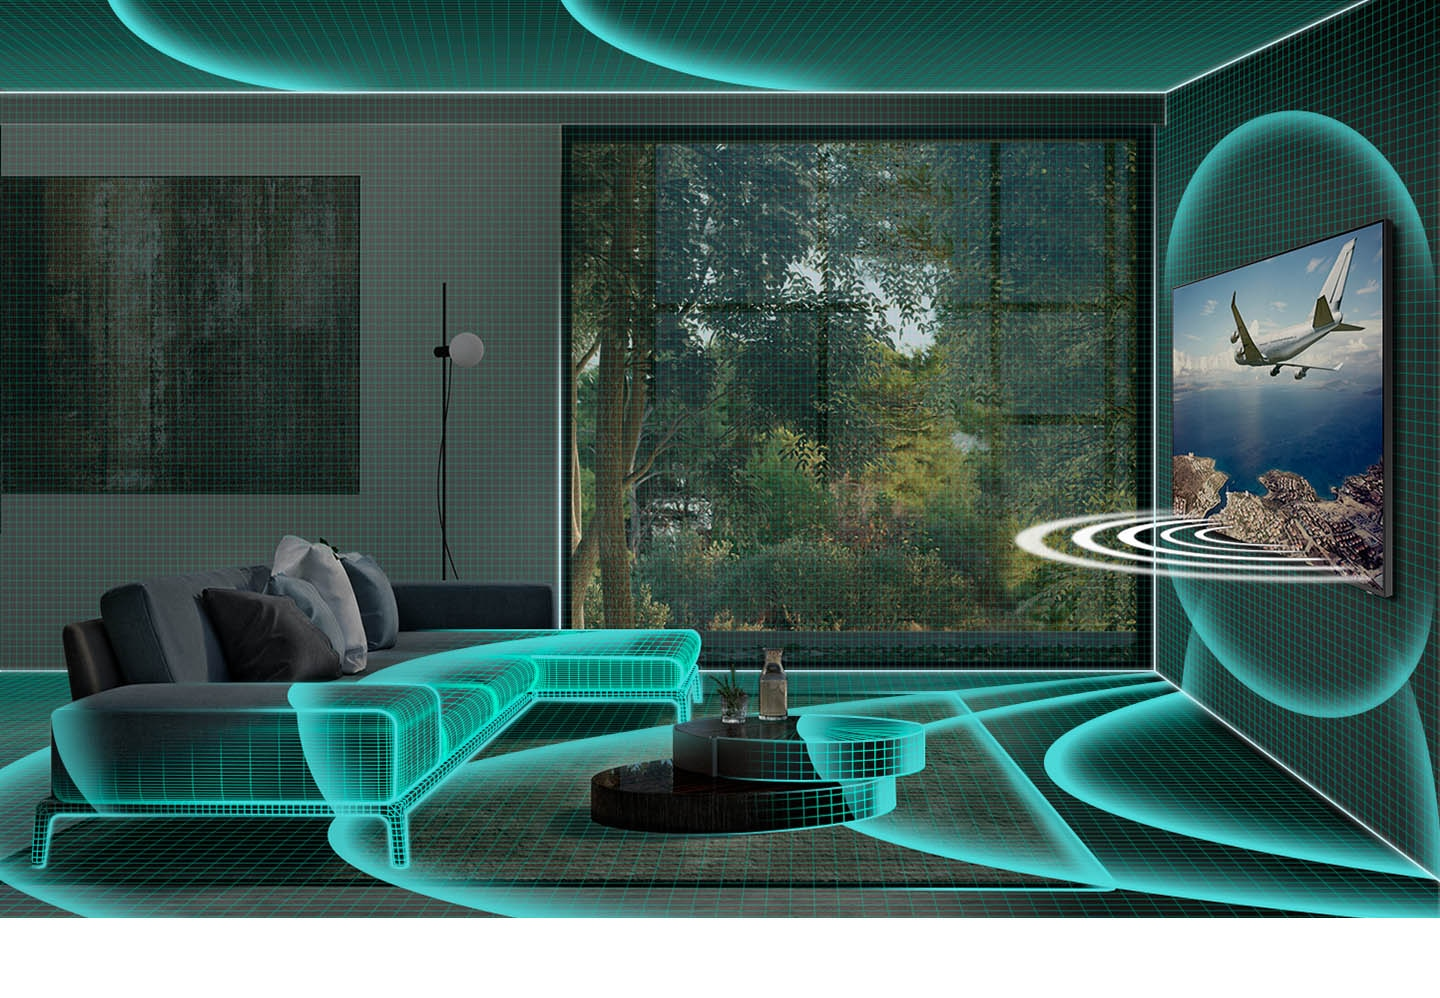 Soundwave graphics projecting from wall-mounted TV are spreading across the living room interior to demonstrate SpaceFit Sound room-analyzing capability.